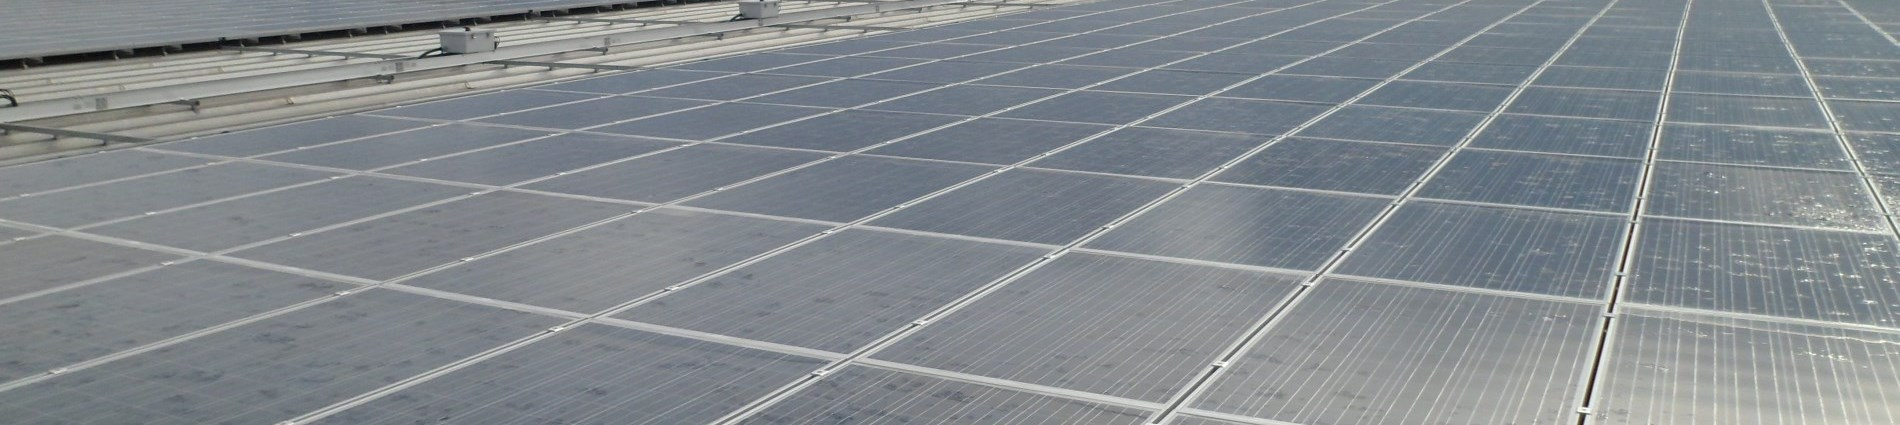 QSWC Rooftop Solar Array Flat Mount